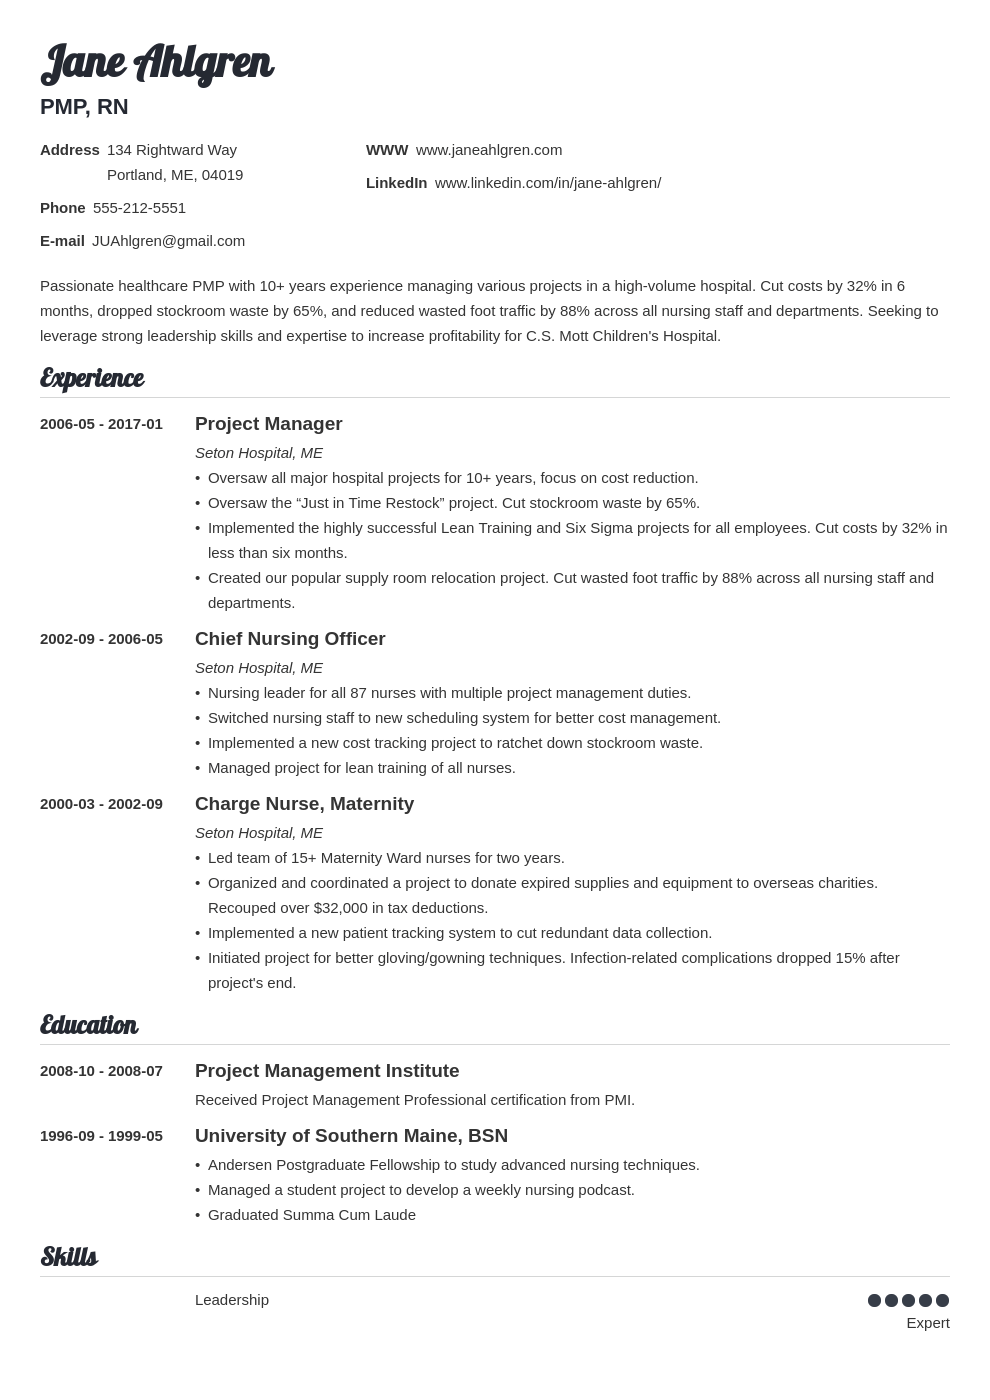 plain text resume example template valera